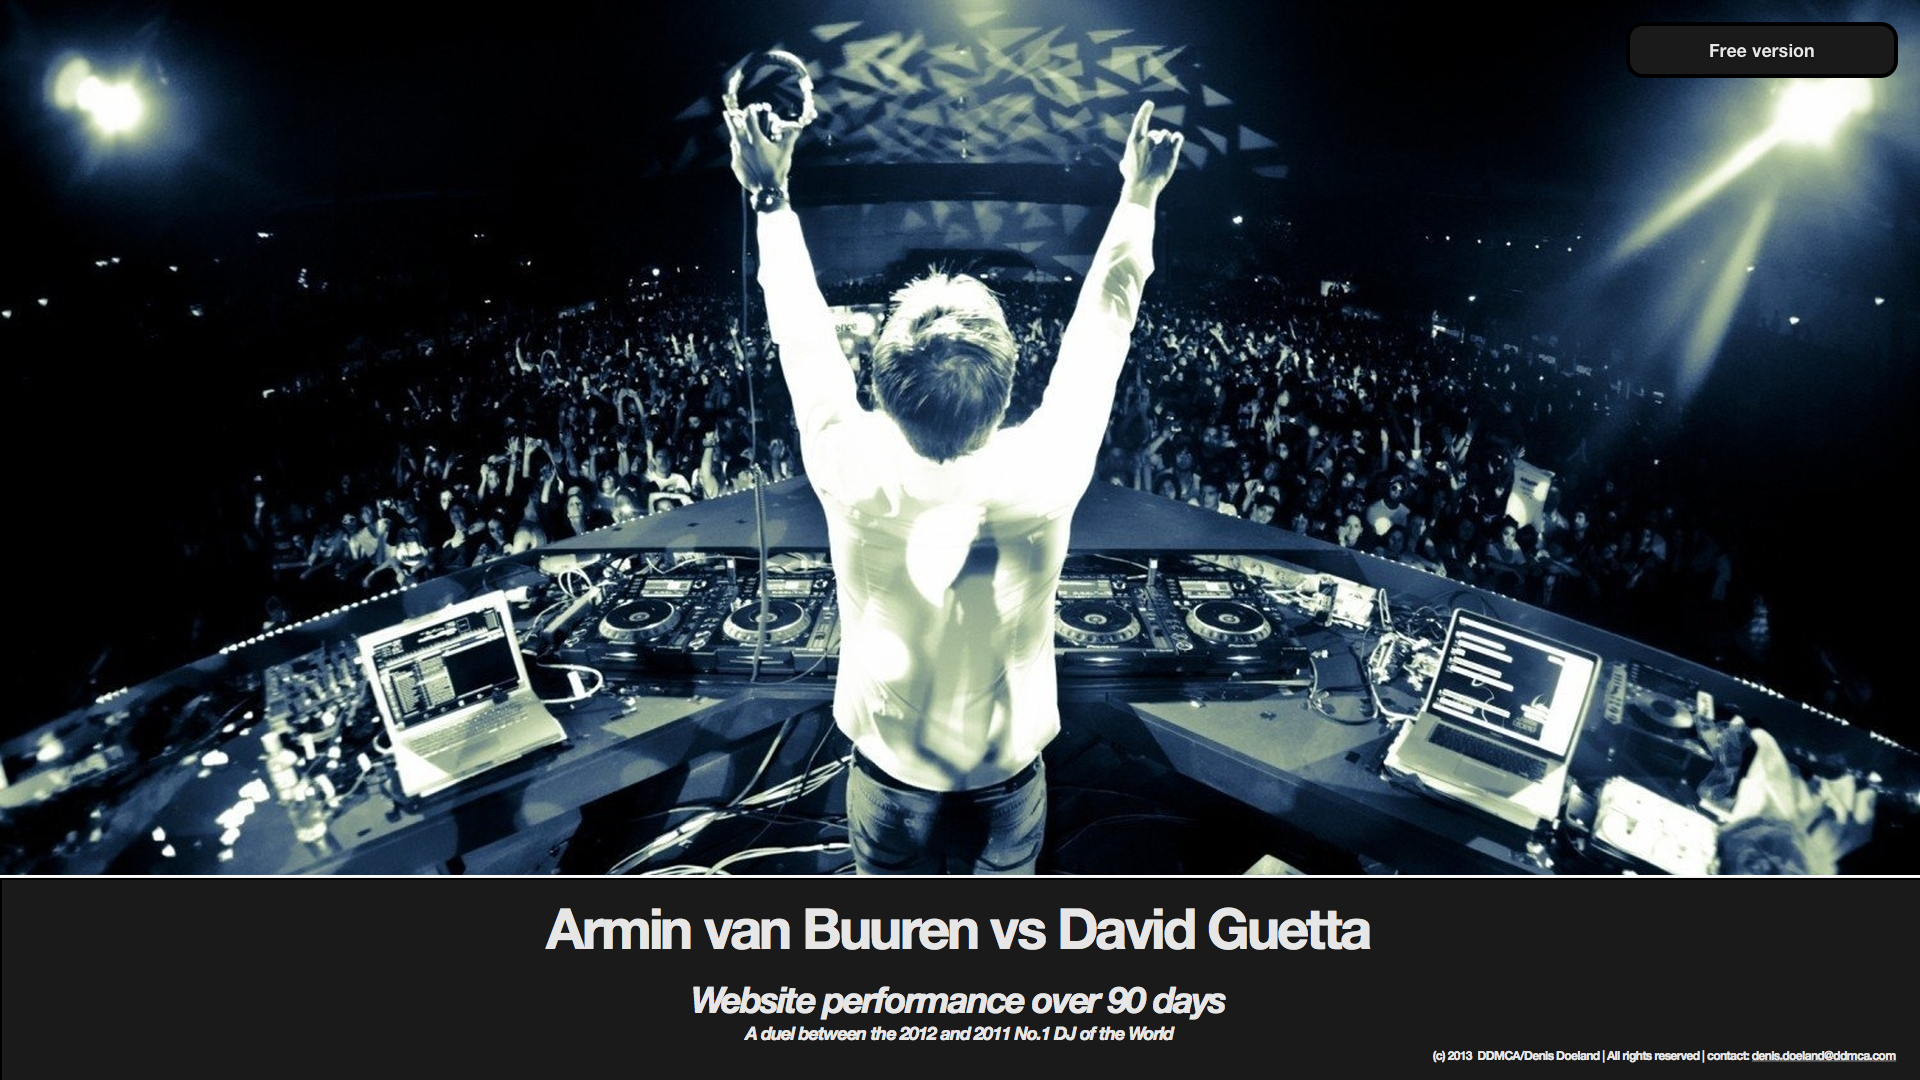 Presentatie 'A duel for the web - Armin van Buuren vs David Guetta' (klik om gratis te downloaden)